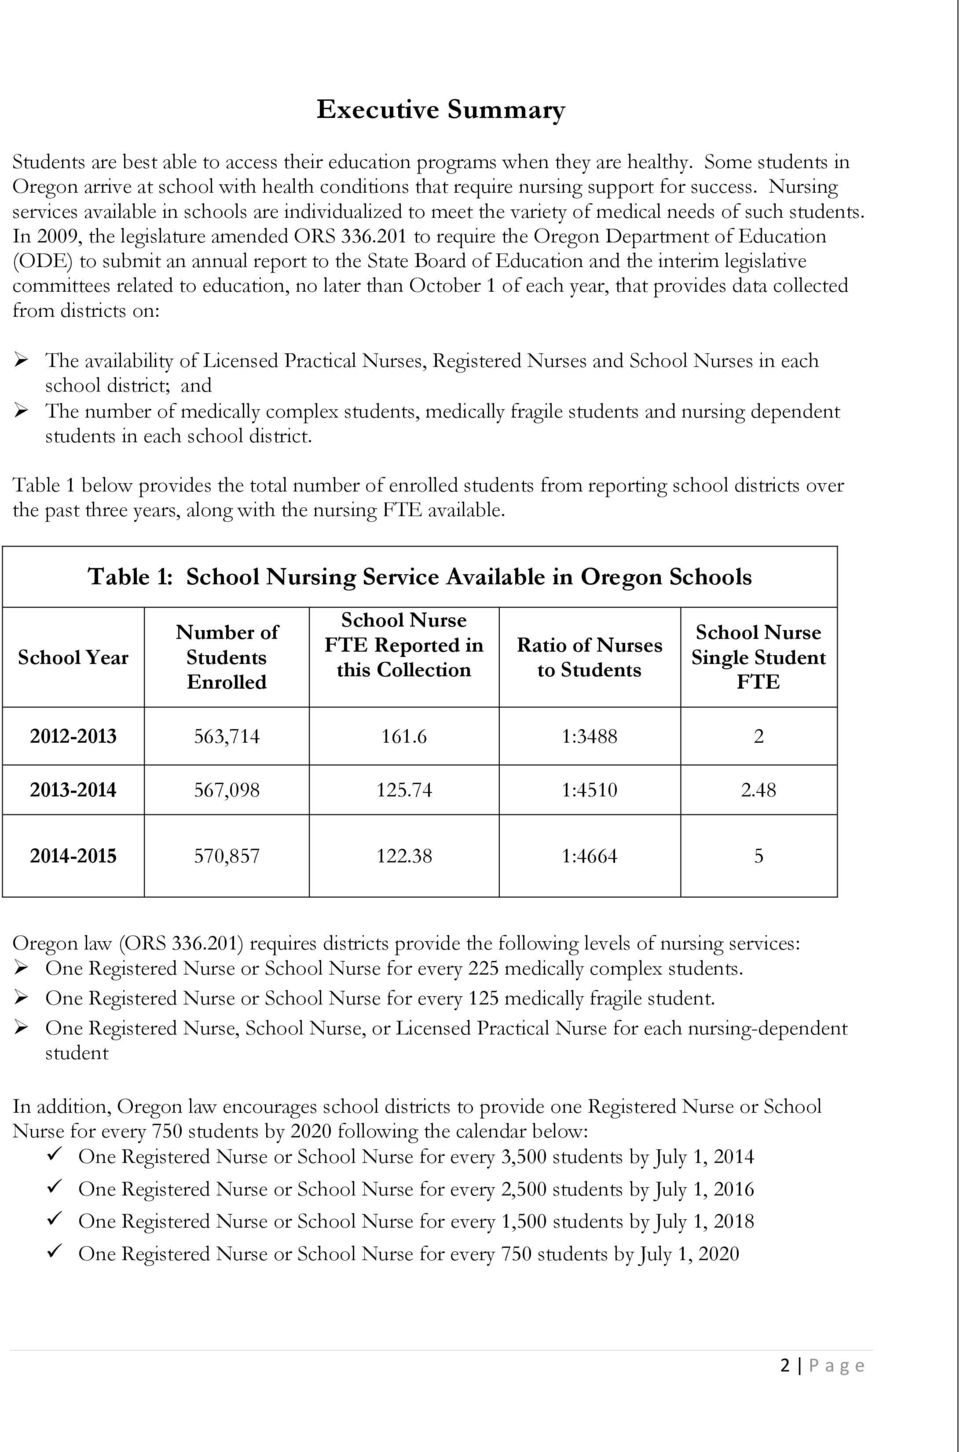 201 to require the Oregon Department of Education (ODE) to submit an annual report to the State Board of Education and the interim legislative committees related to education, no later than October 1